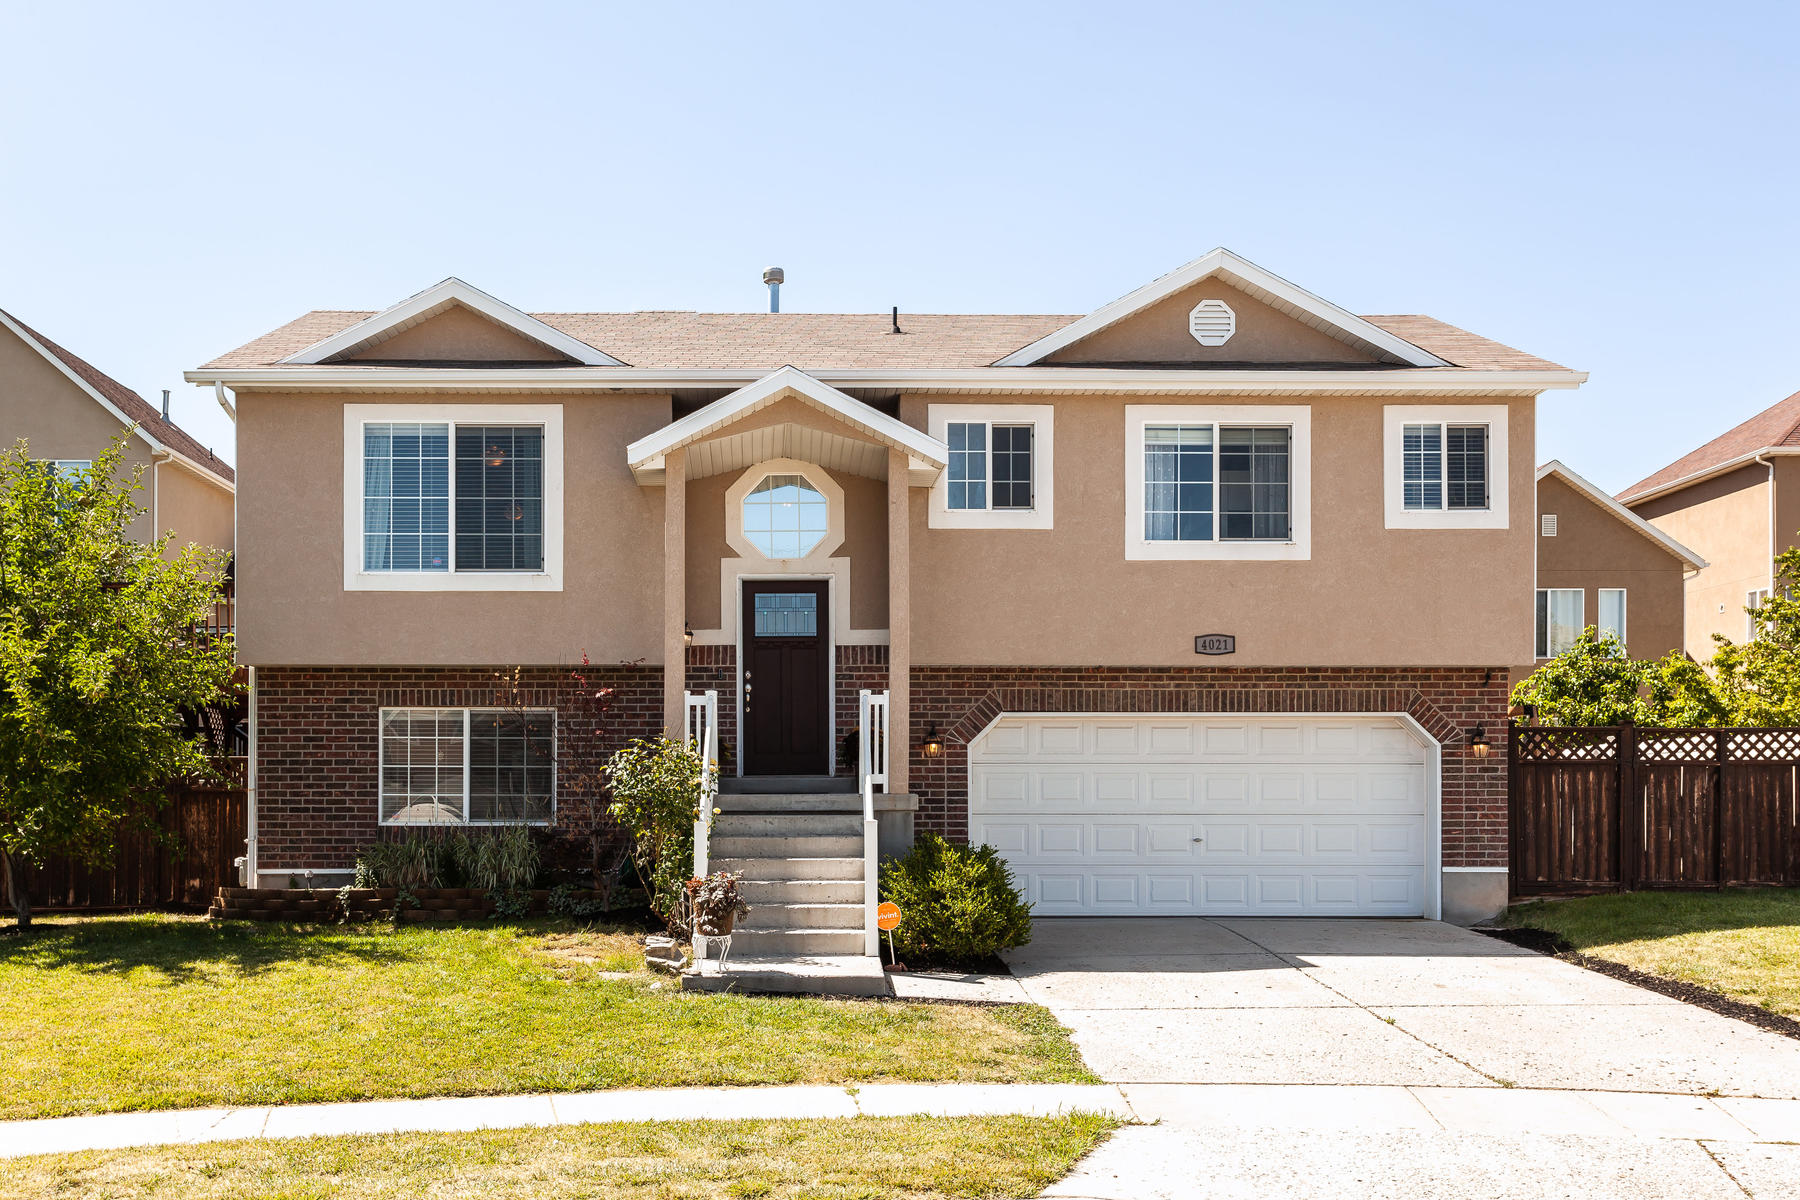 Single Family Homes for Active at Perfectly Located Quiet Cul-De- Sac 4021 W 6585 S Taylorsville, Utah 84129 United States